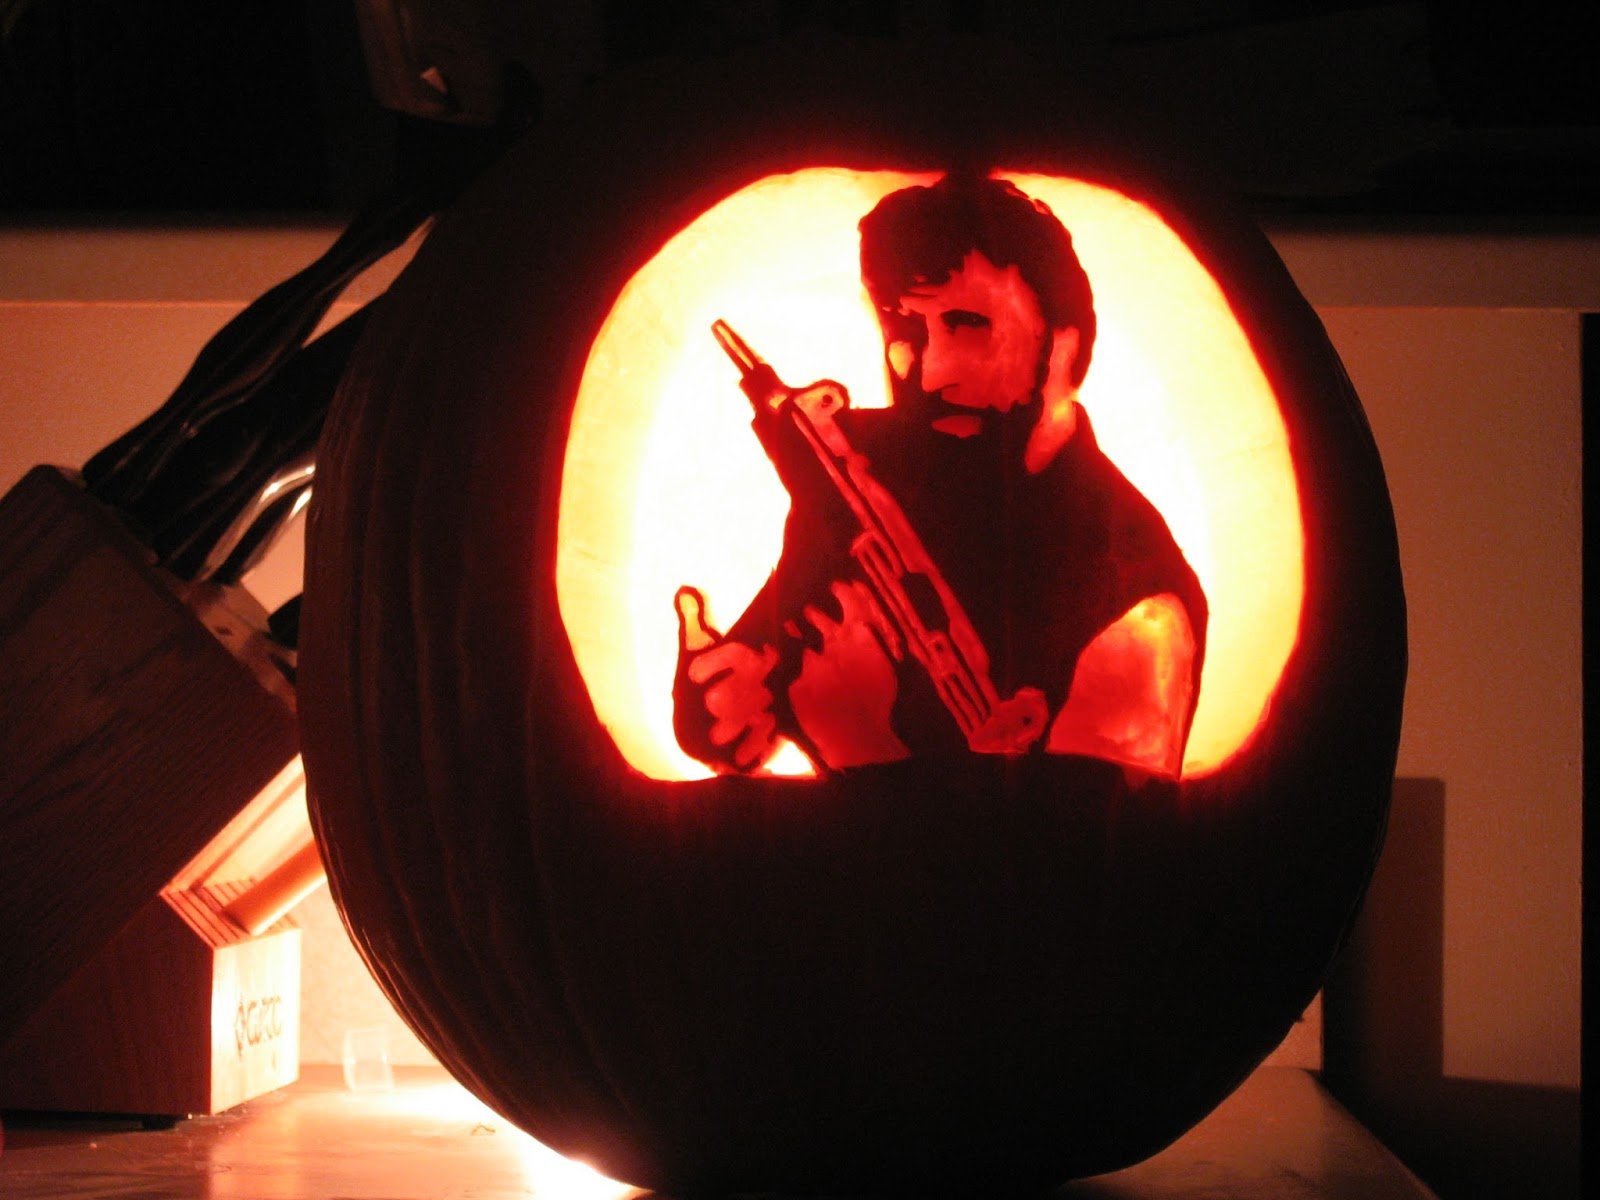 Impress Your Neighborhood with Cool Pumpkin Carving Ideas!